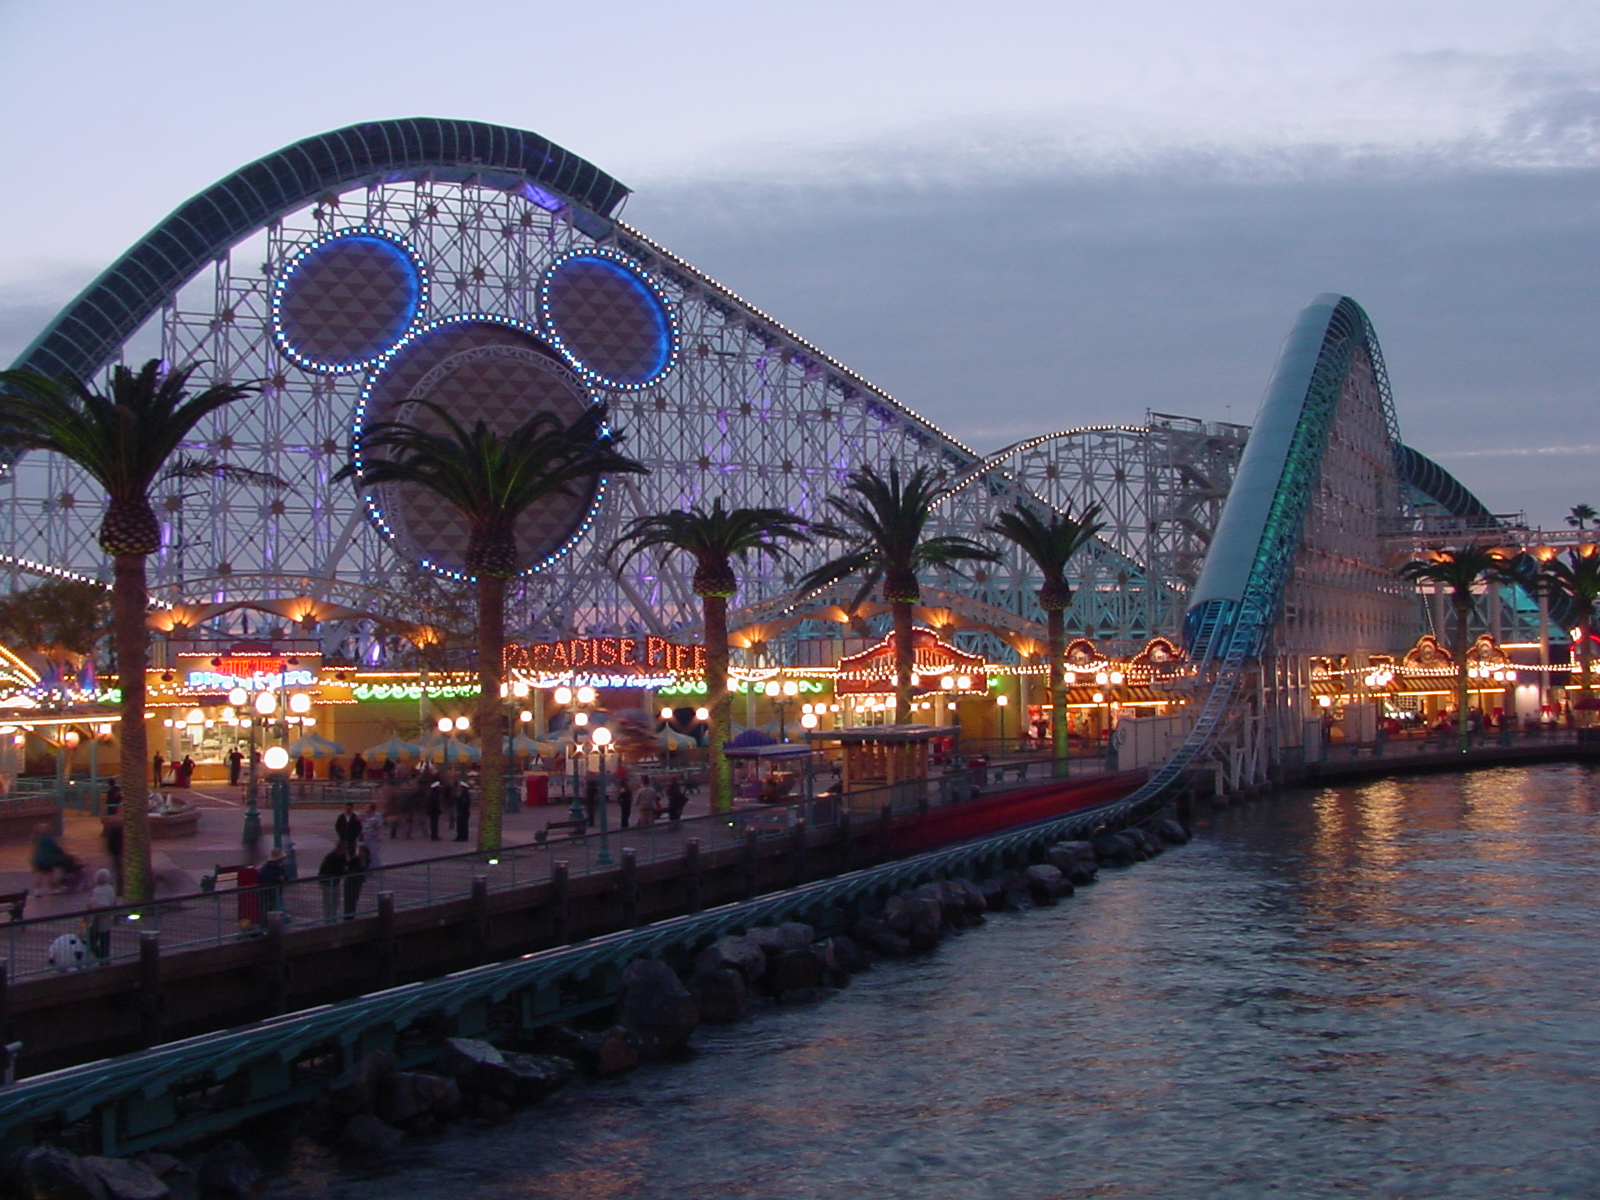 Riders Stranded on California Screamin' Due to a Purse